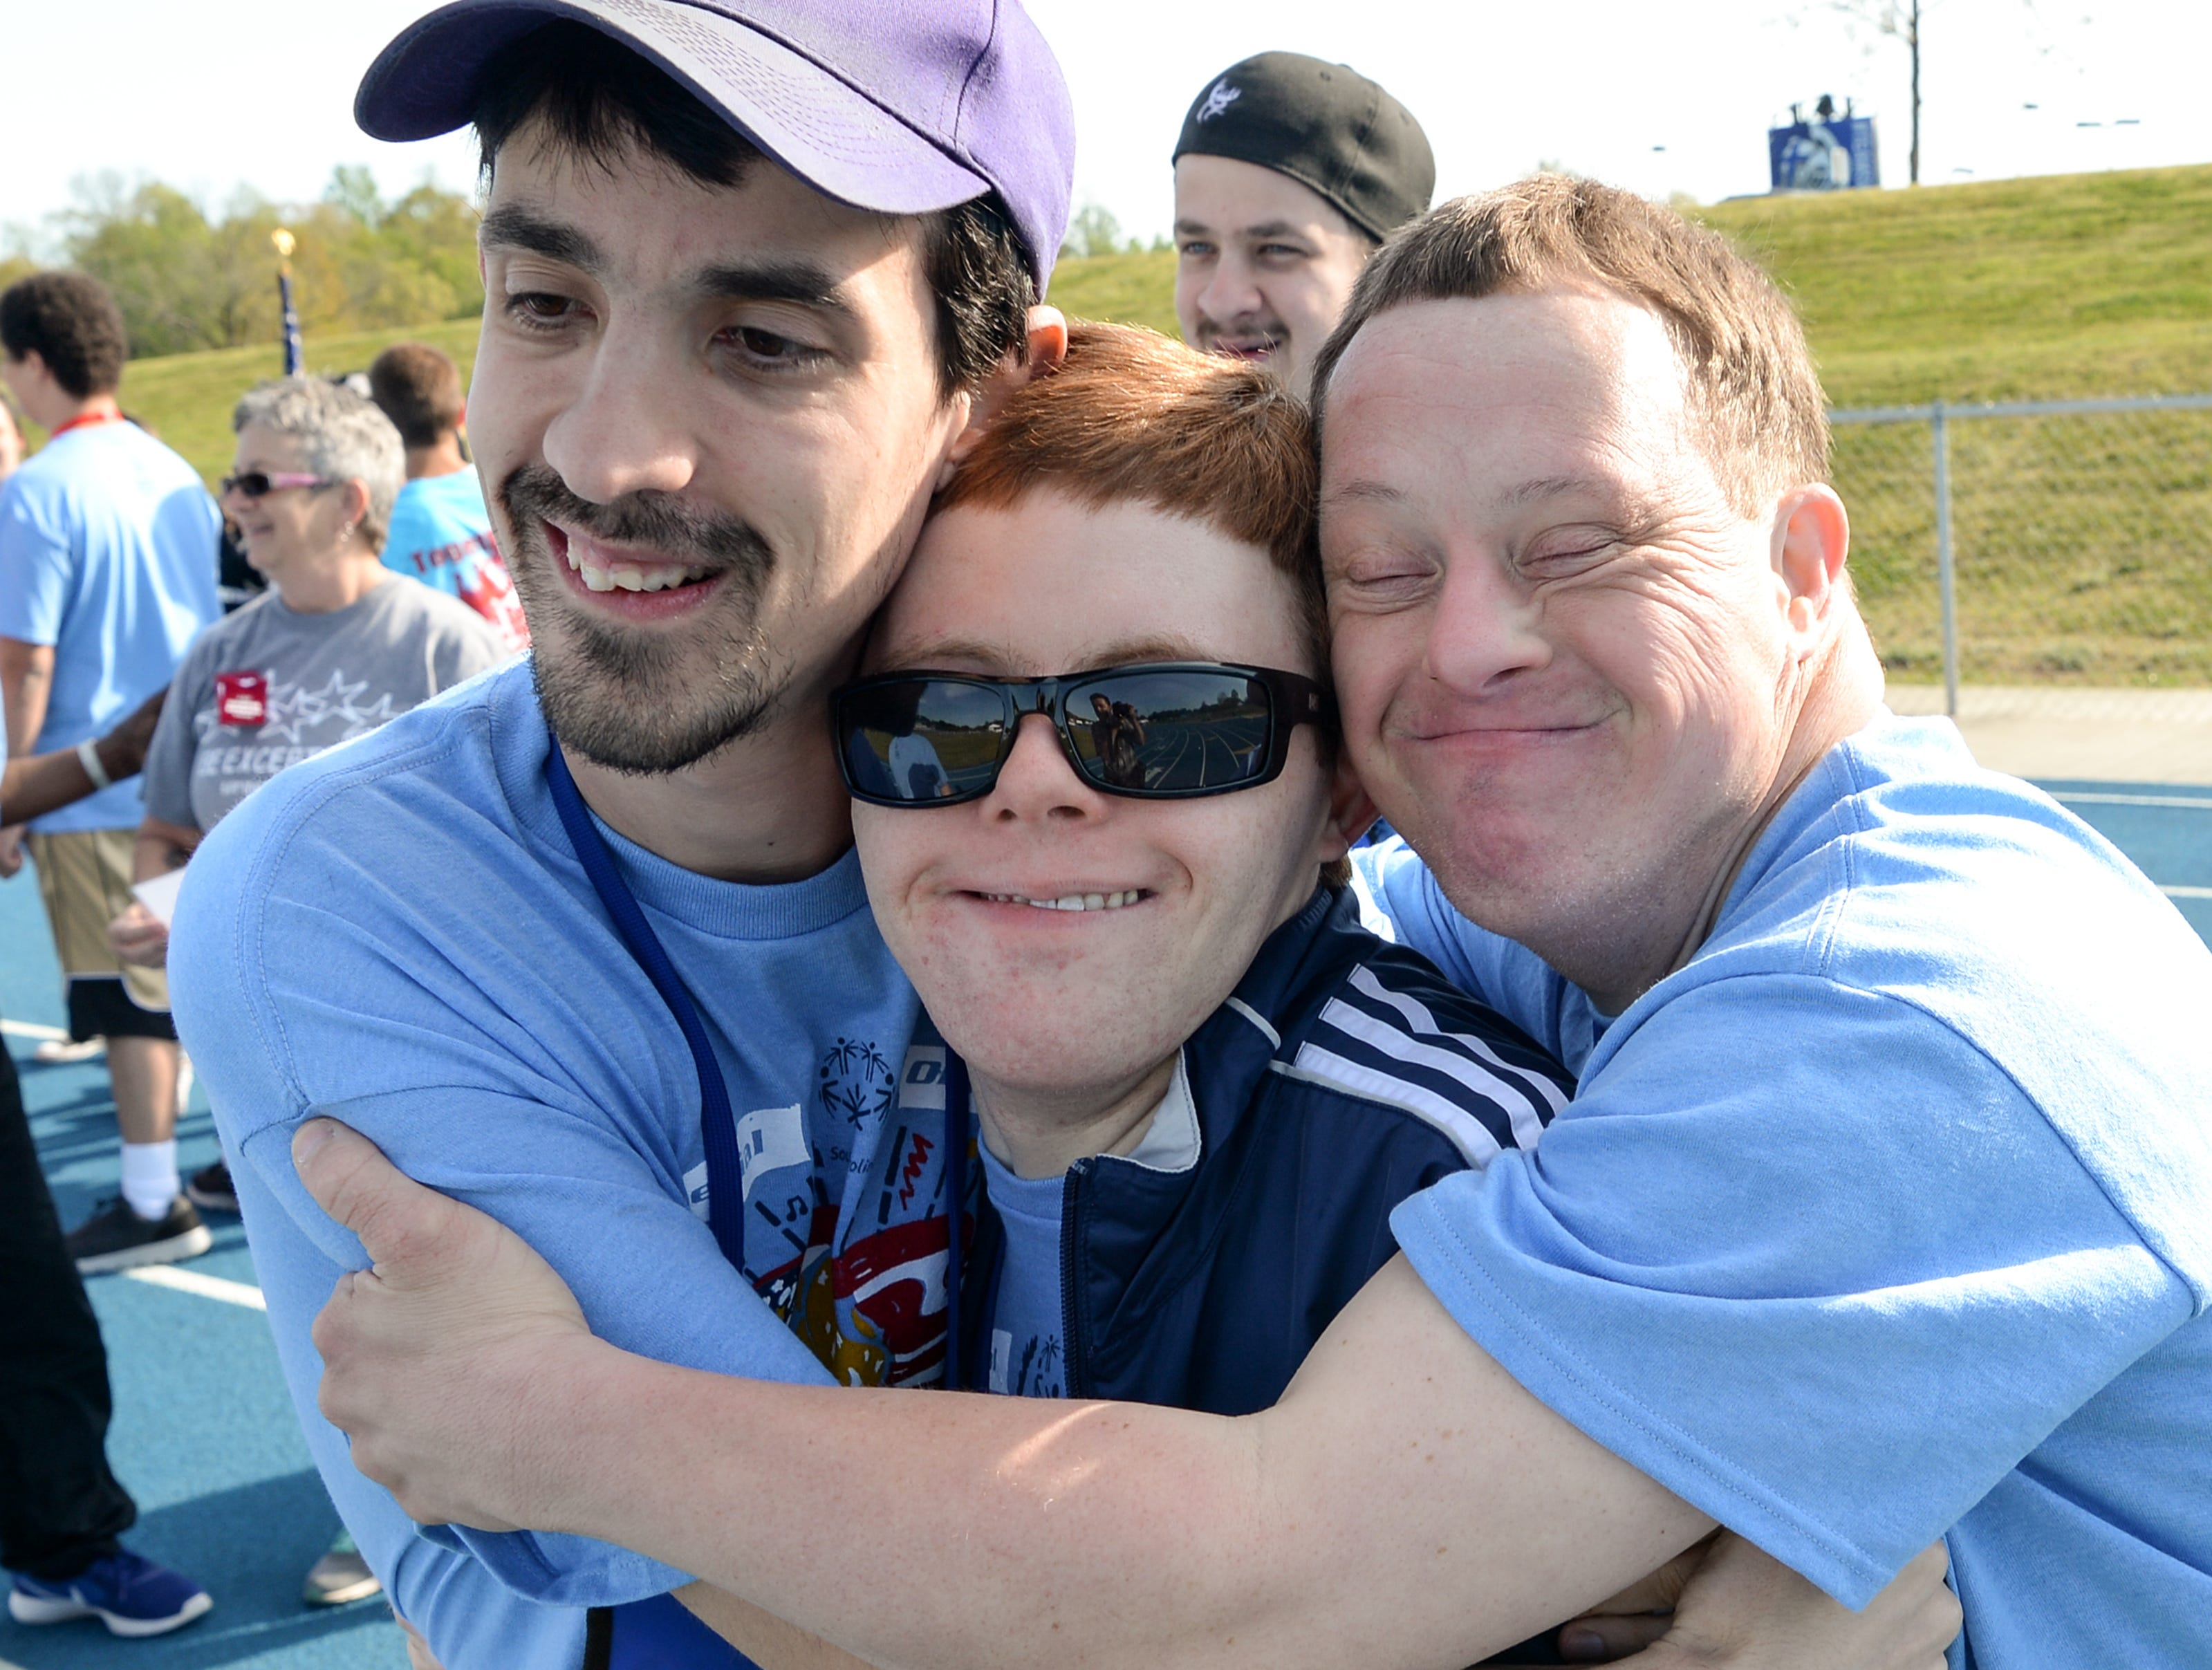 Devin Buccino, left, George Sands III, and Brad Hammond, from the Special Olympics South Carolina Area 14, give each other a group hug before Anderson CountyÕs Spring Games at Southern Wesleyan University on Wednesday. Children and adults from across Anderson County will compete in track and field events, which will include standing long jump, softball and tennis ball throw, 100 meter walk and run, 50 meter walk and run, 50 and 100 meter assisted walk and run, and wheelchair races. The parade of athletes will begin promptly at 9:30 a.m. followed by opening ceremonies and events. Events are set to conclude by 1 p.m. The Spring Games, with over 600 athletes at the Area 14 games, are around the state providing year-round athletic training and competition for 28,902 children and adults with intellectual disabilities.